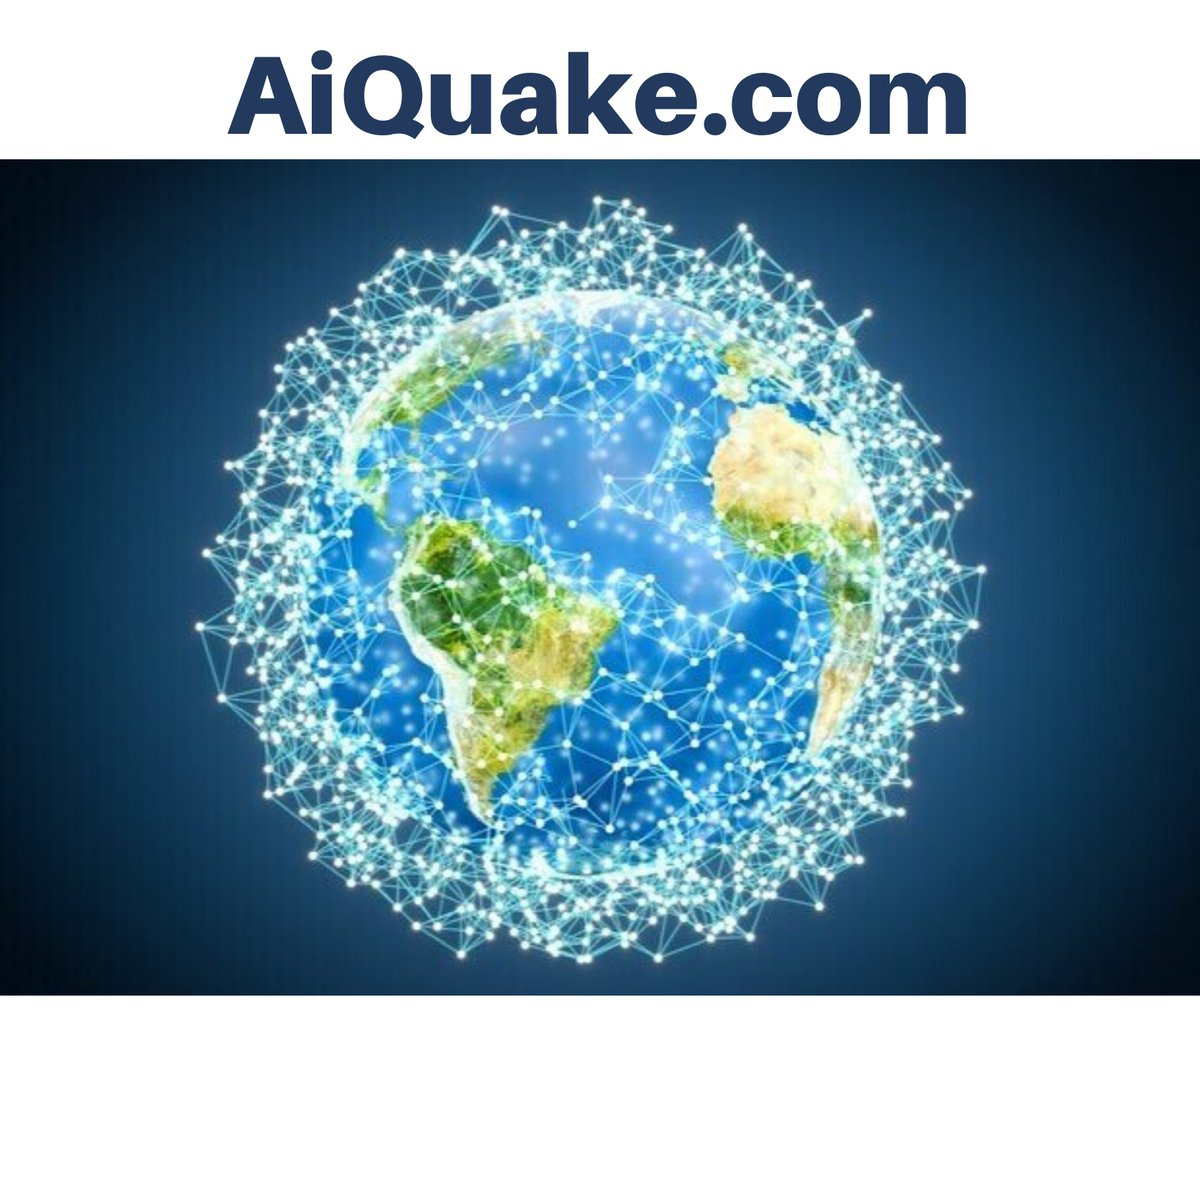 test Twitter Media - Are you ready for the next HUGE quake?  **https://t.co/RrRJnzOkF9** is for SALE!  Wanna chat?  Email me at contact@heavyweightdomains.com.      #AI #ArtificialIntelligence #bigdata #IoT #5G #machinelearning #tech #technology #datascience #deeplearning #robotics #analytics #robots https://t.co/W5juwGCxrA